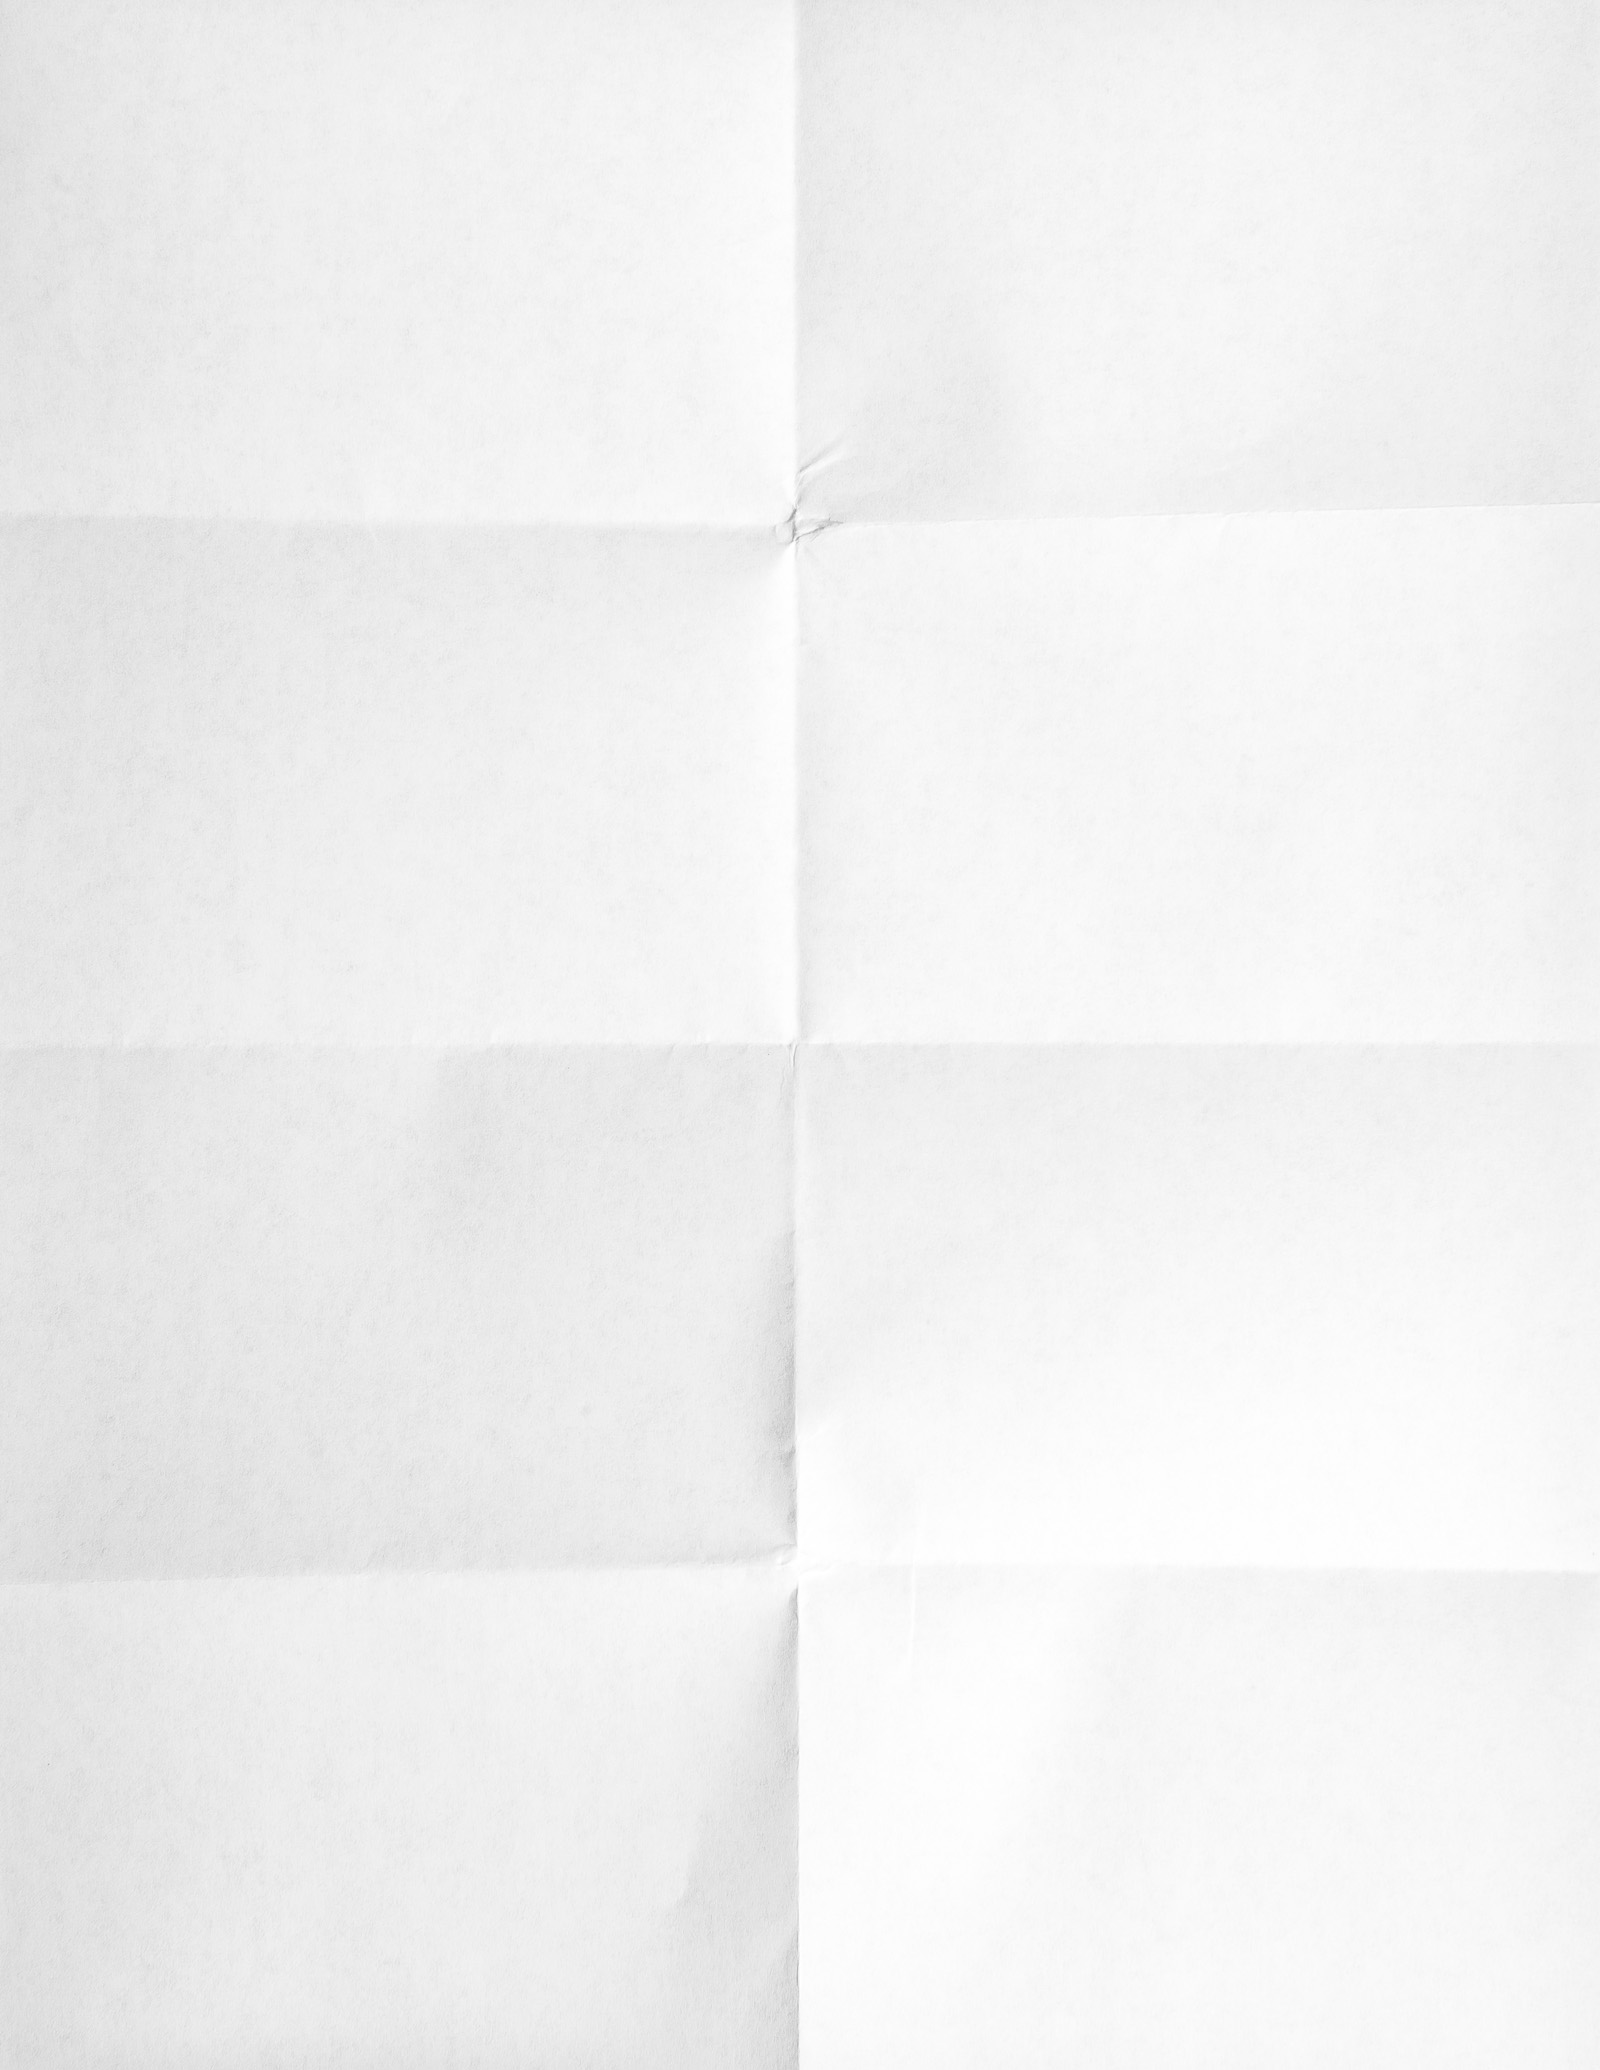 White left the crease paper textures 51754